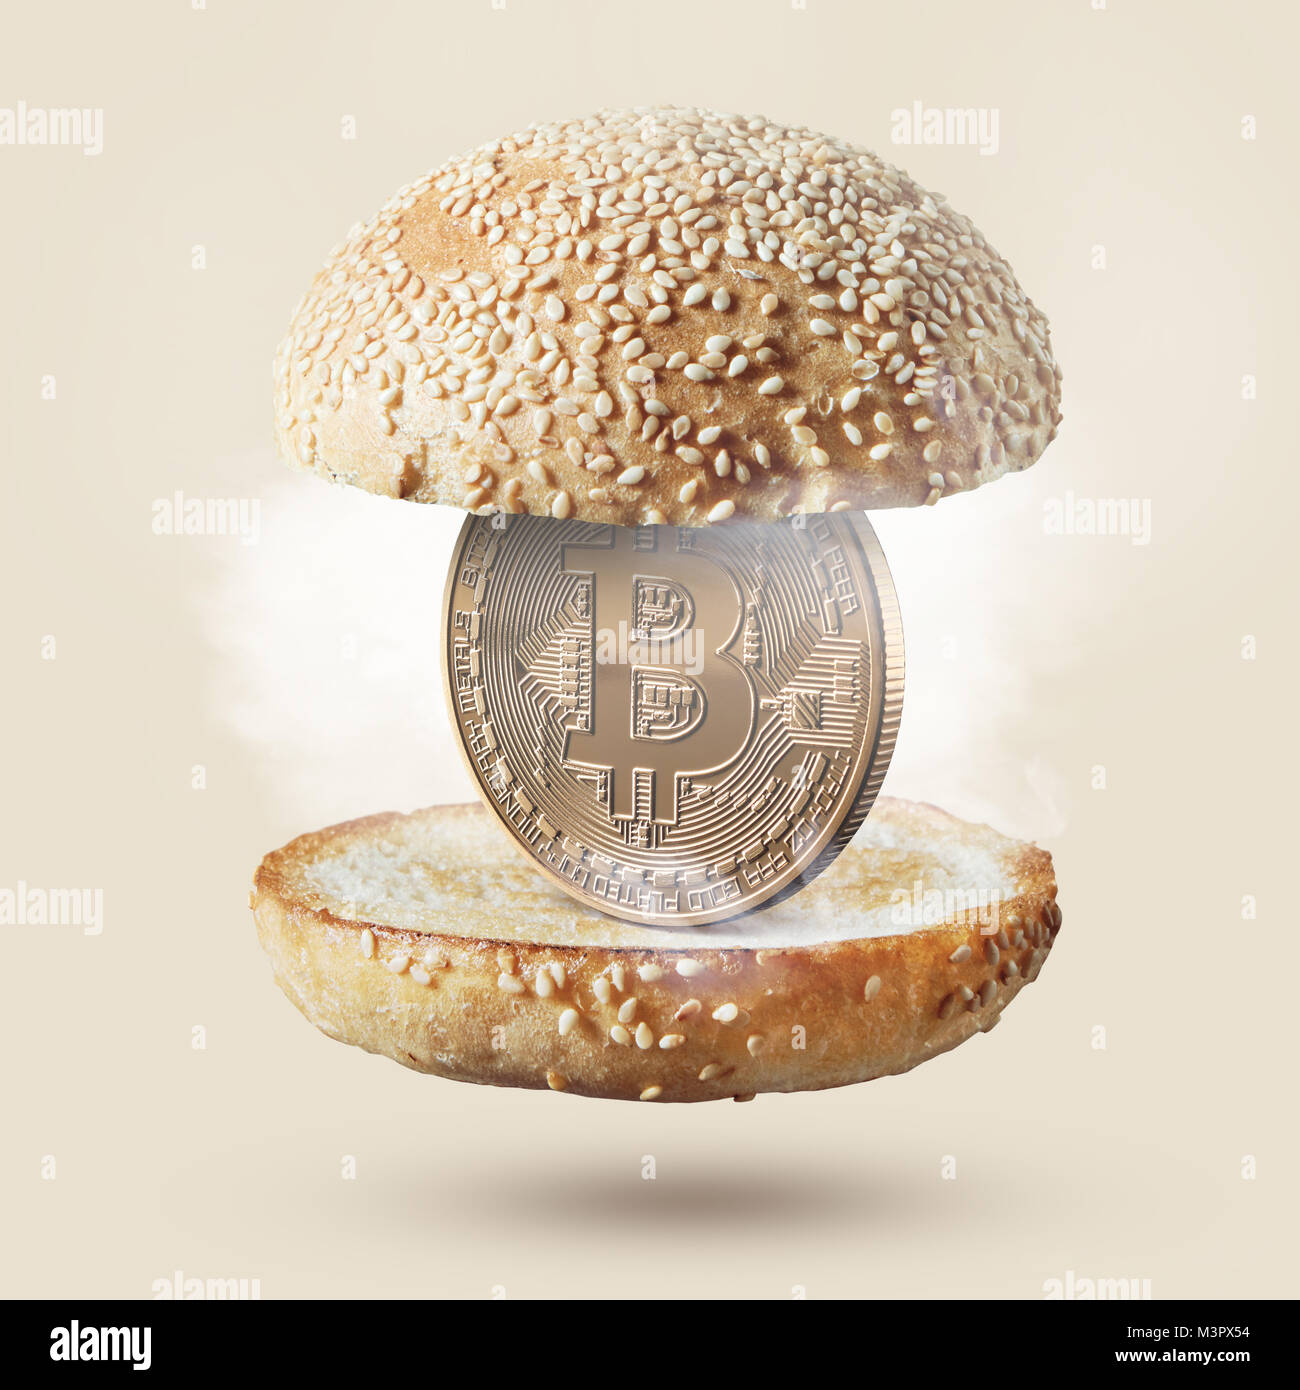 Hot burger buns with a coin bitcoin gold inside food concept buy hot burger buns with a coin bitcoin gold inside food concept buy food for cryptocurrency photo can be used for food ico projects or news about inno ccuart Images